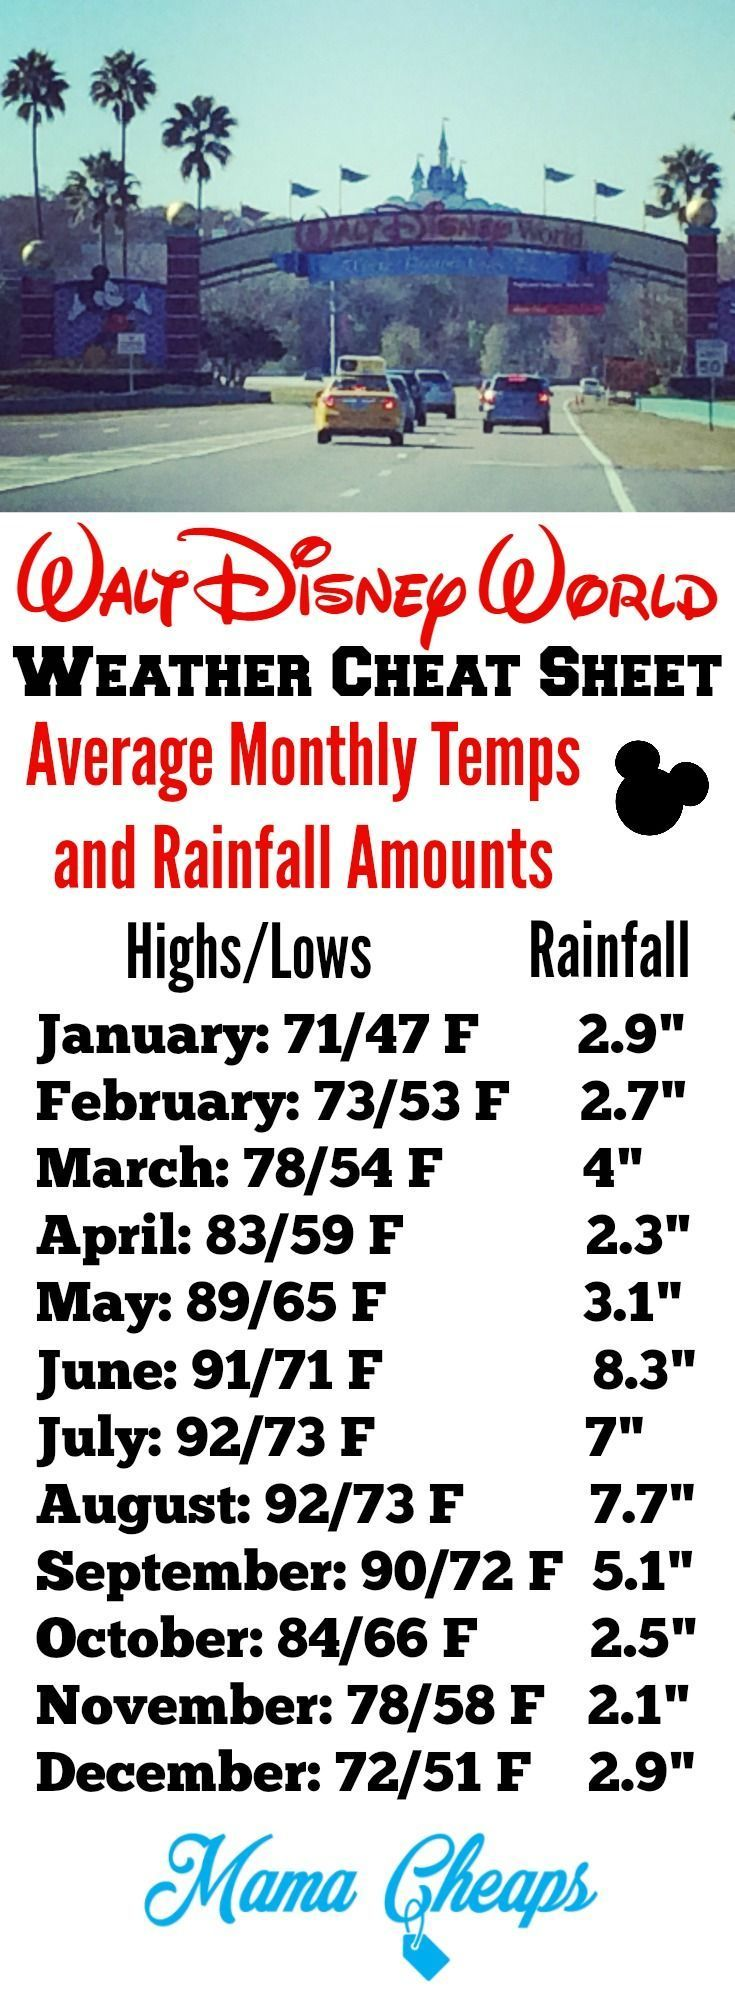 Disney World Weather Cheat Sheet: Average Temperatures and Rainfall Don't pack your bags until you check weather averages! Find more great DISNEY tips and tricks on http://MamaCheaps.com!